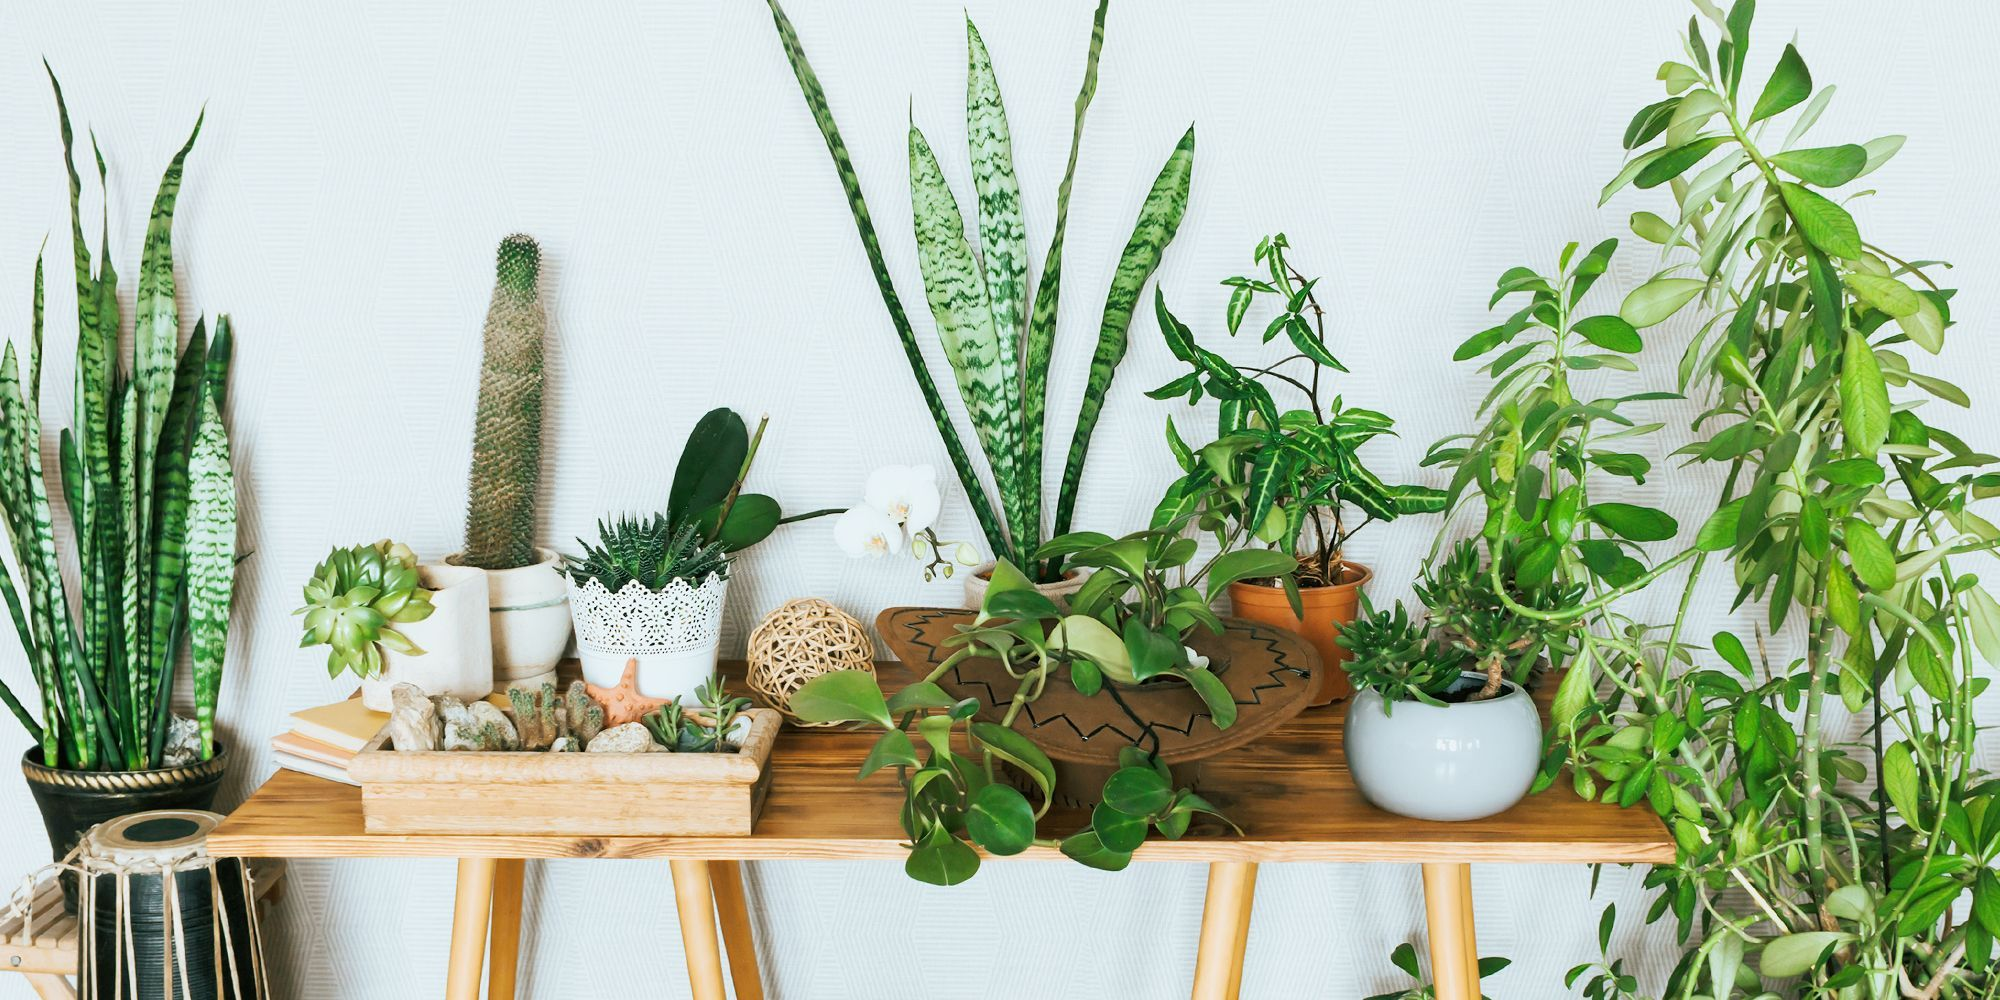 This Is Where to Buy Plants Online to Deck Out Your Home With Gorgeous Greenery